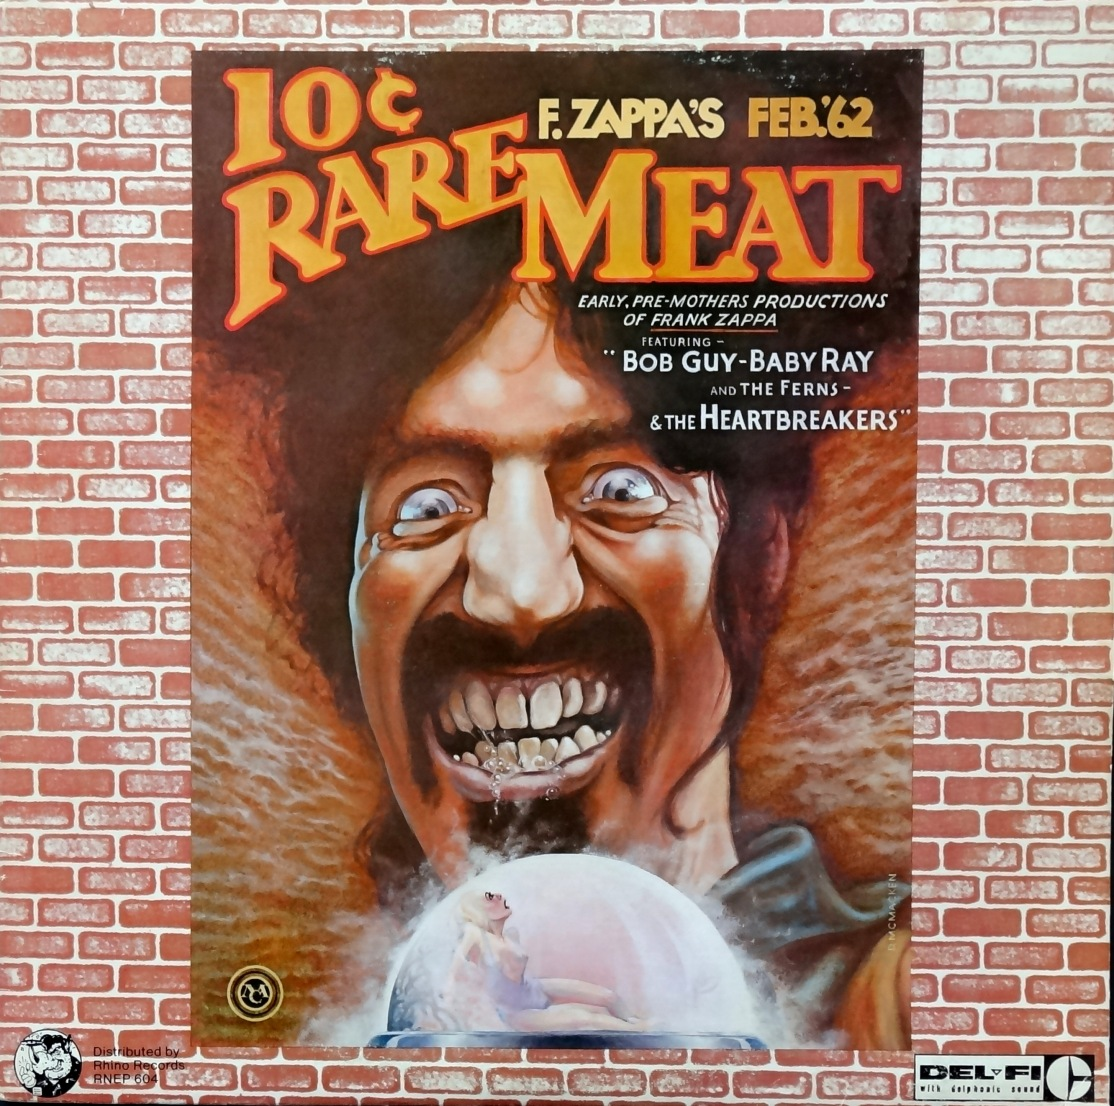 Frank Zappa Rare Meat front